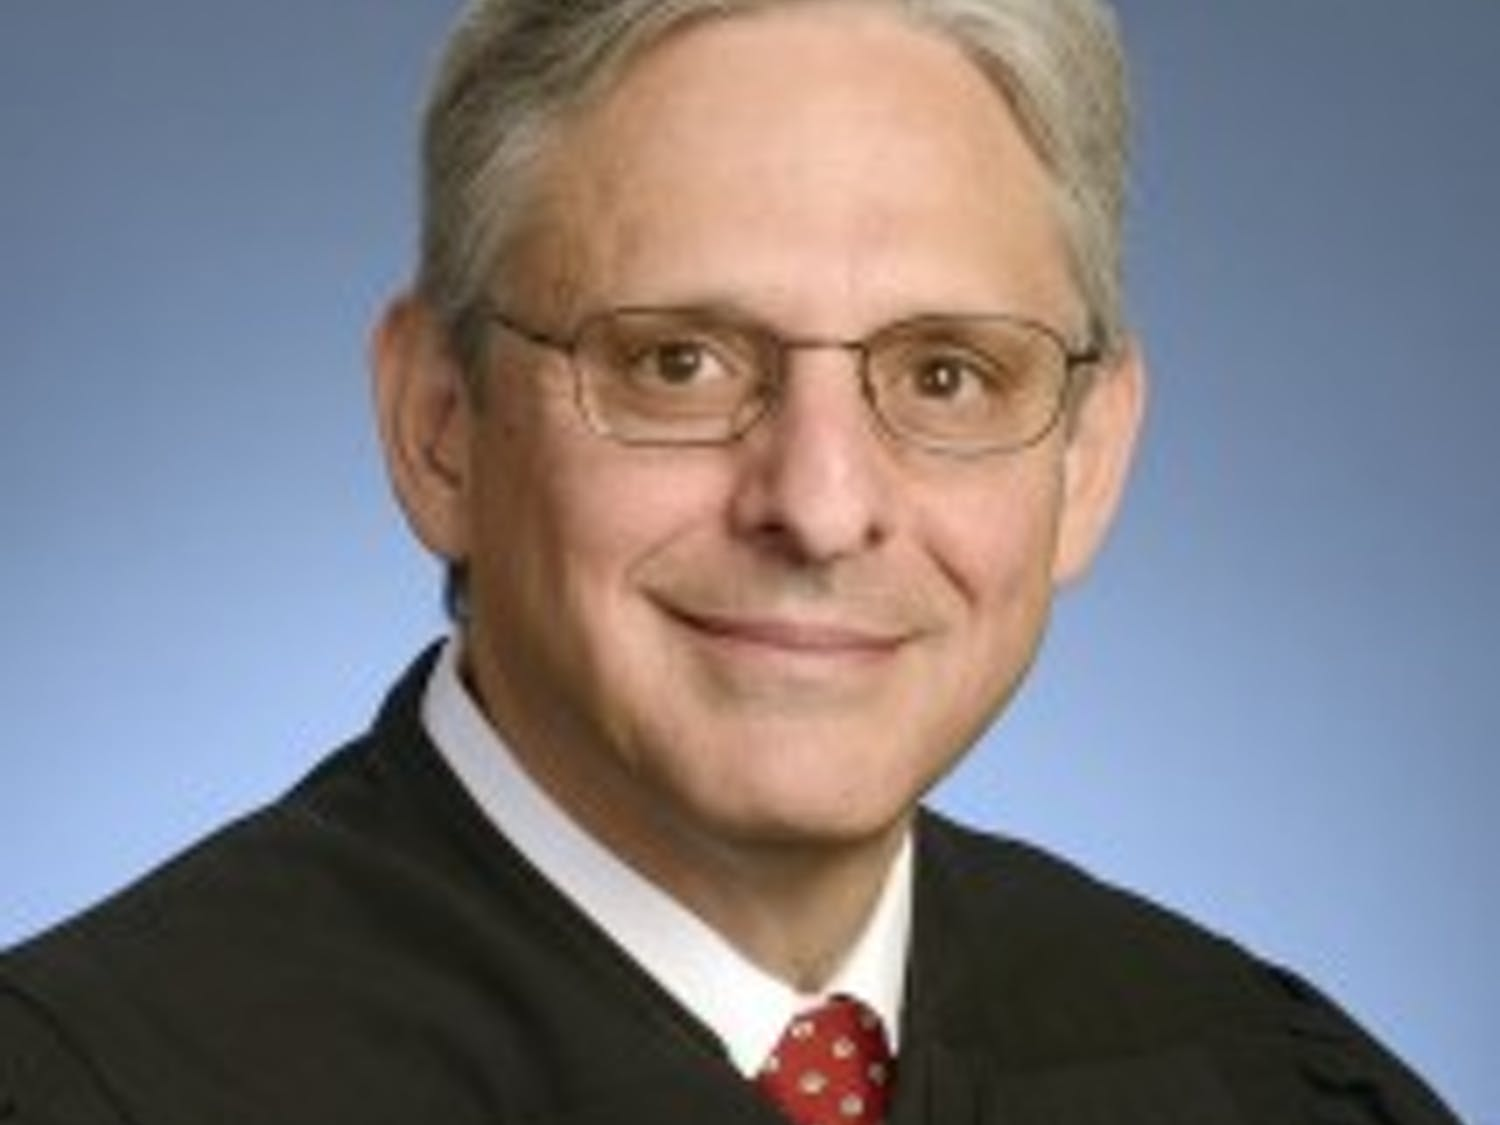 President Barack Obama named federal judge Merrick Garland to the U.S. Supreme Court Wednesday, praising the juristas a moderate who has earned the respect of members of both parties.